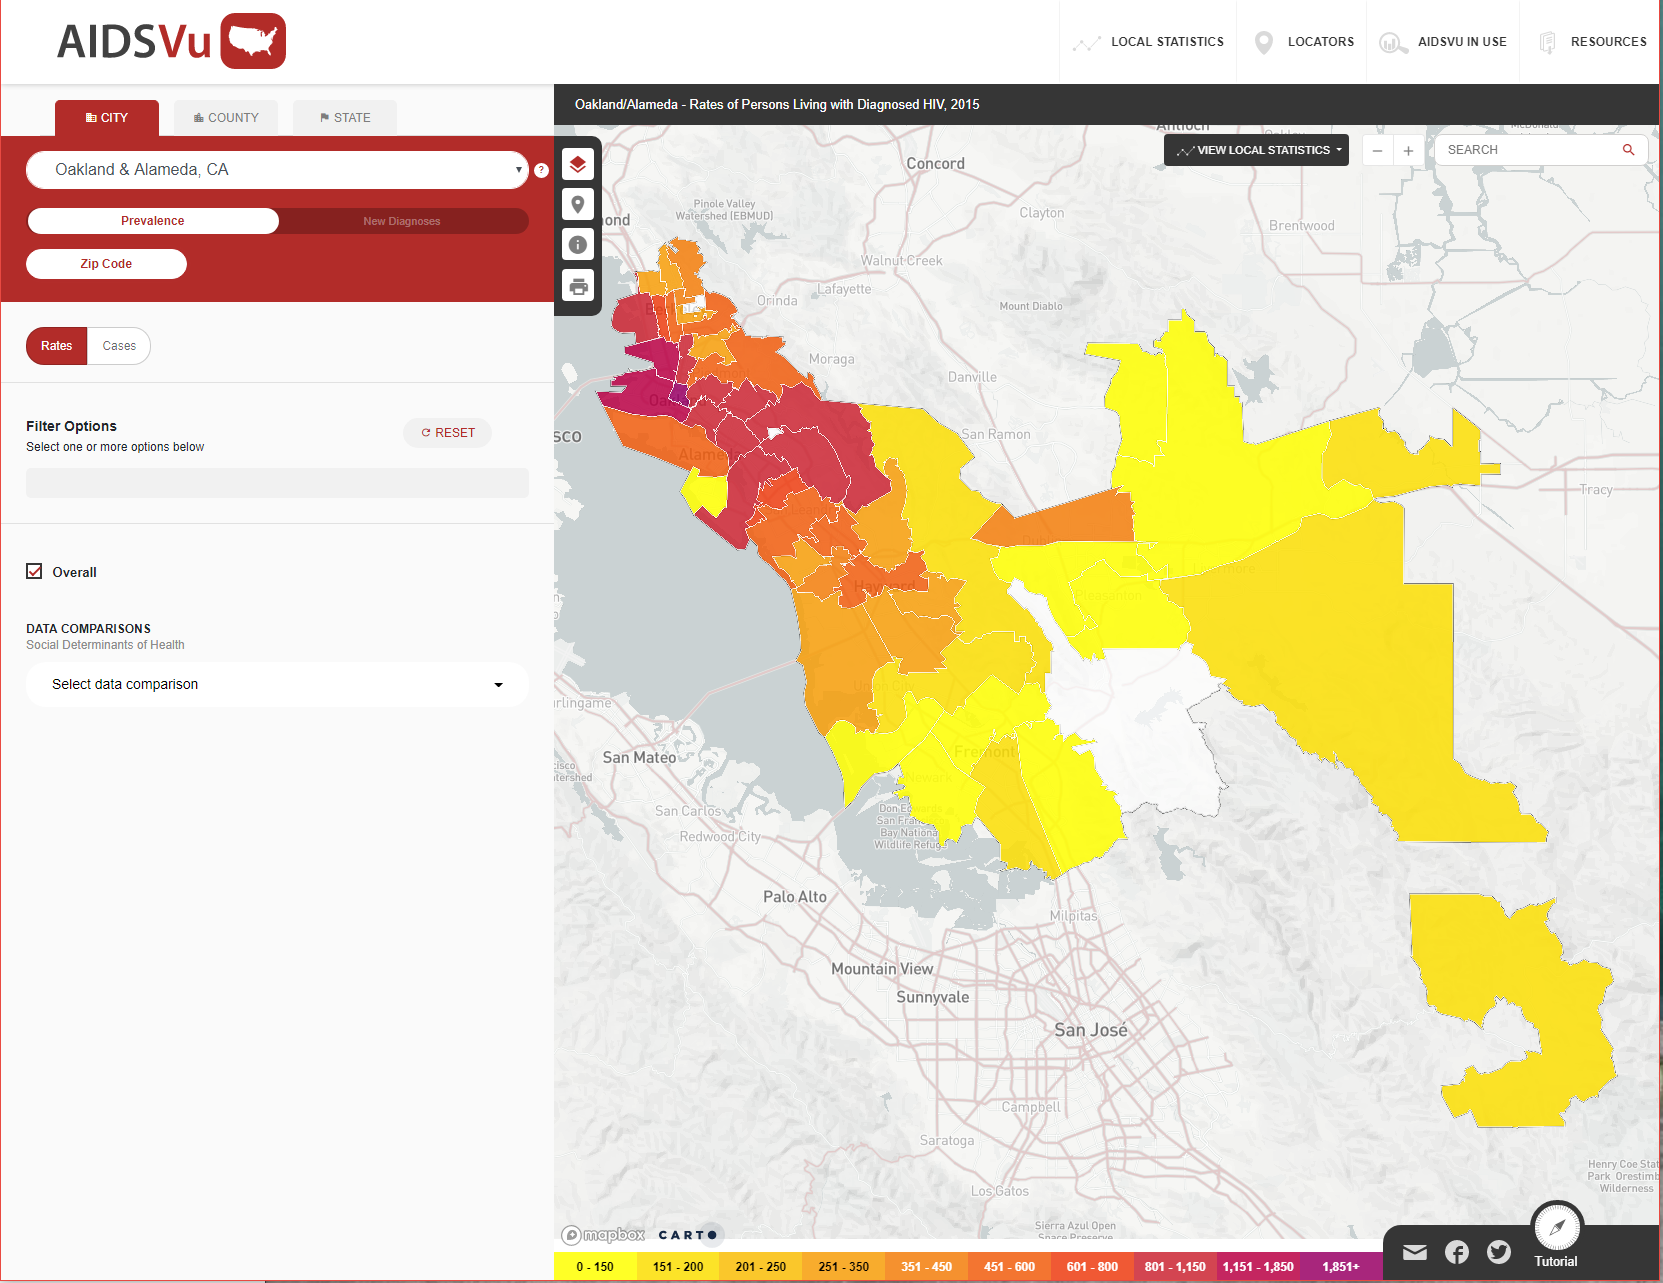 Map of HIV prevalence in Alameda County